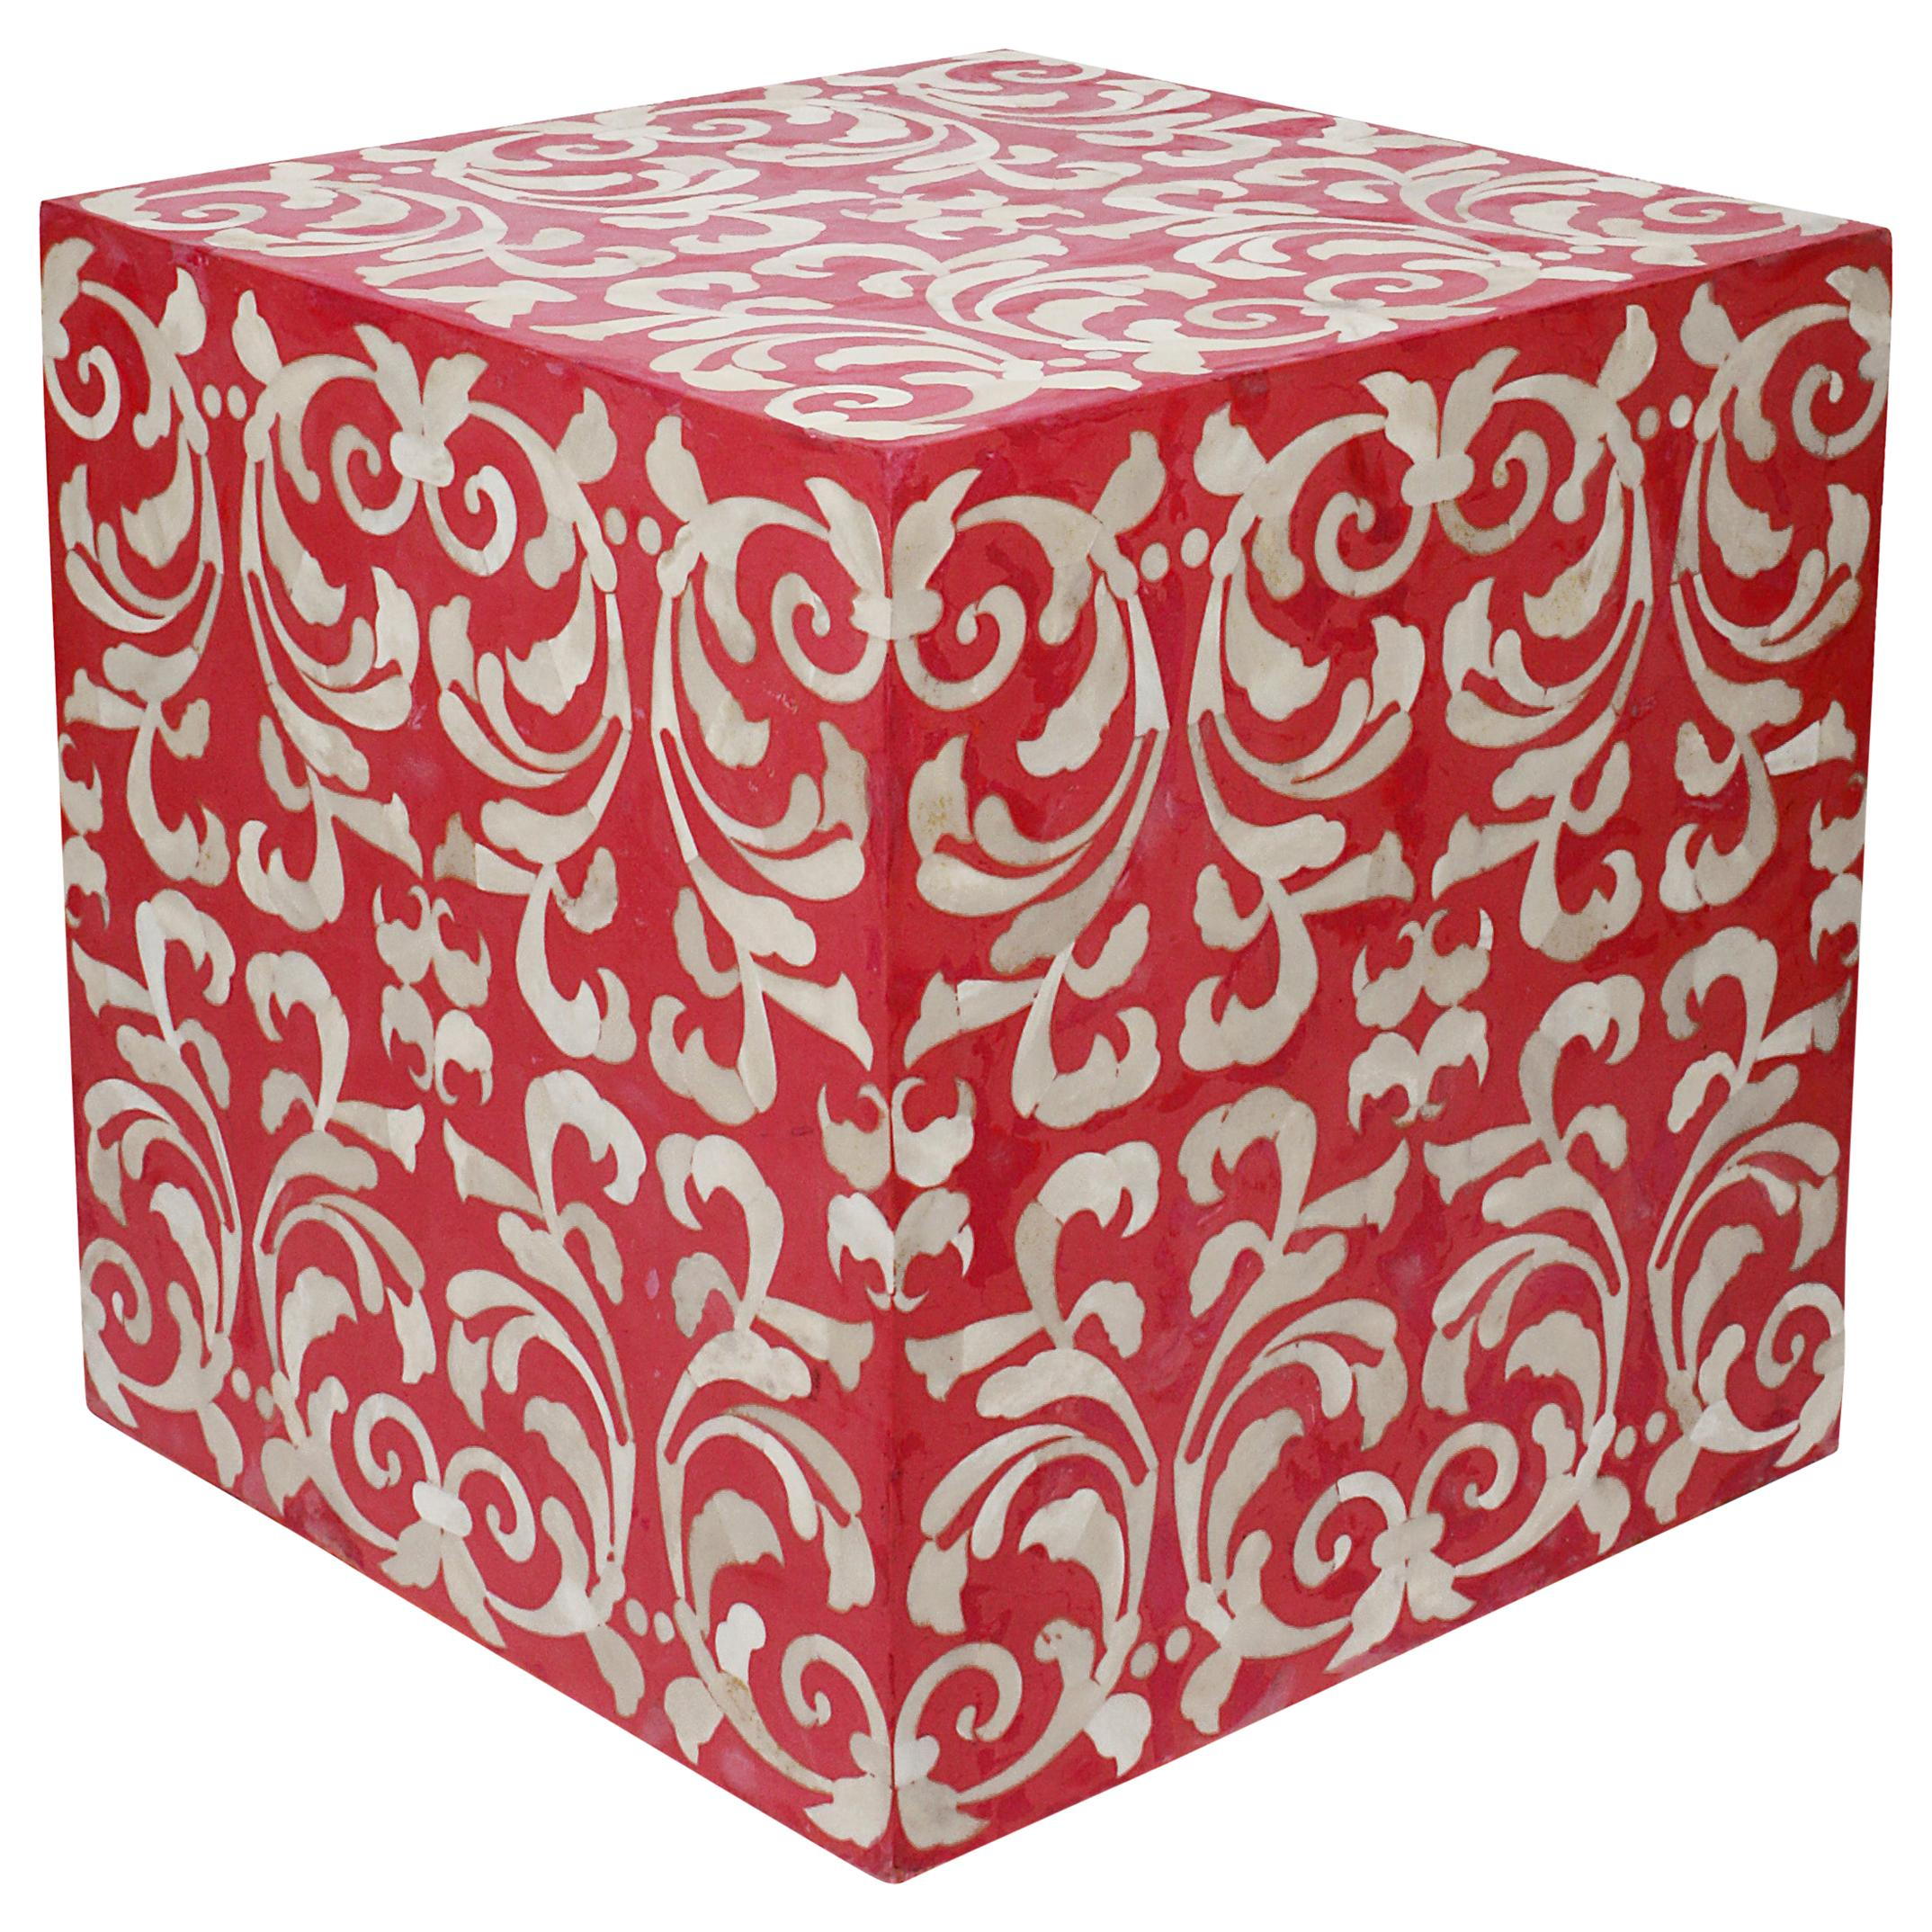 Fleur Cube End Table / Stool Made with Red Resin with Baroque Bone Inlay